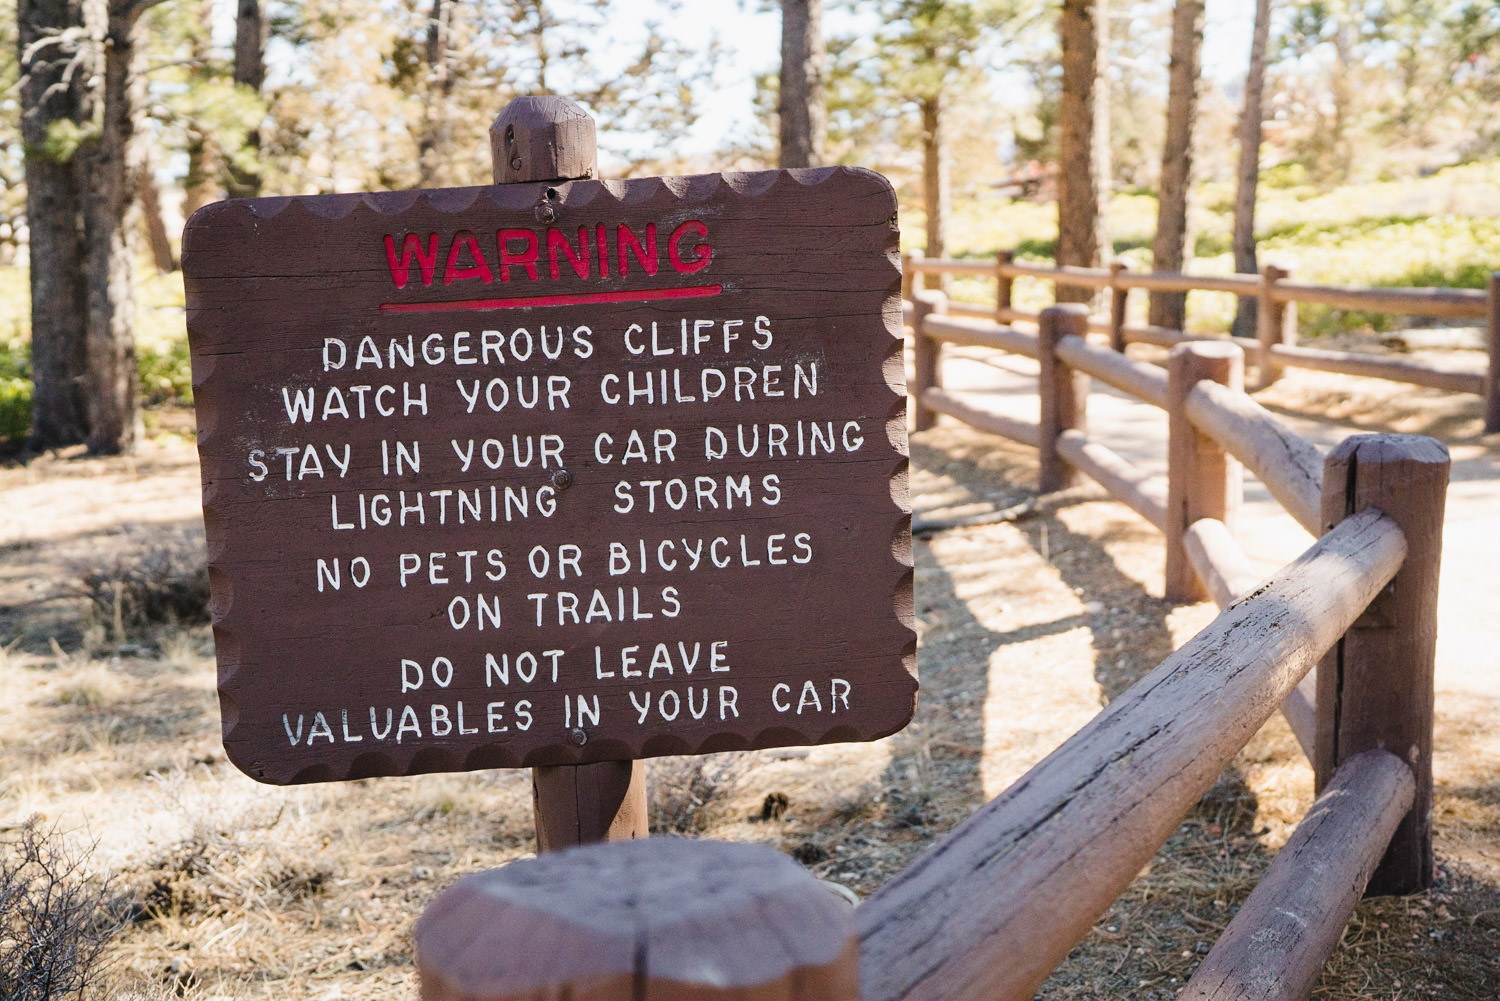 Bryce Canyon elopement warning sign in park photo